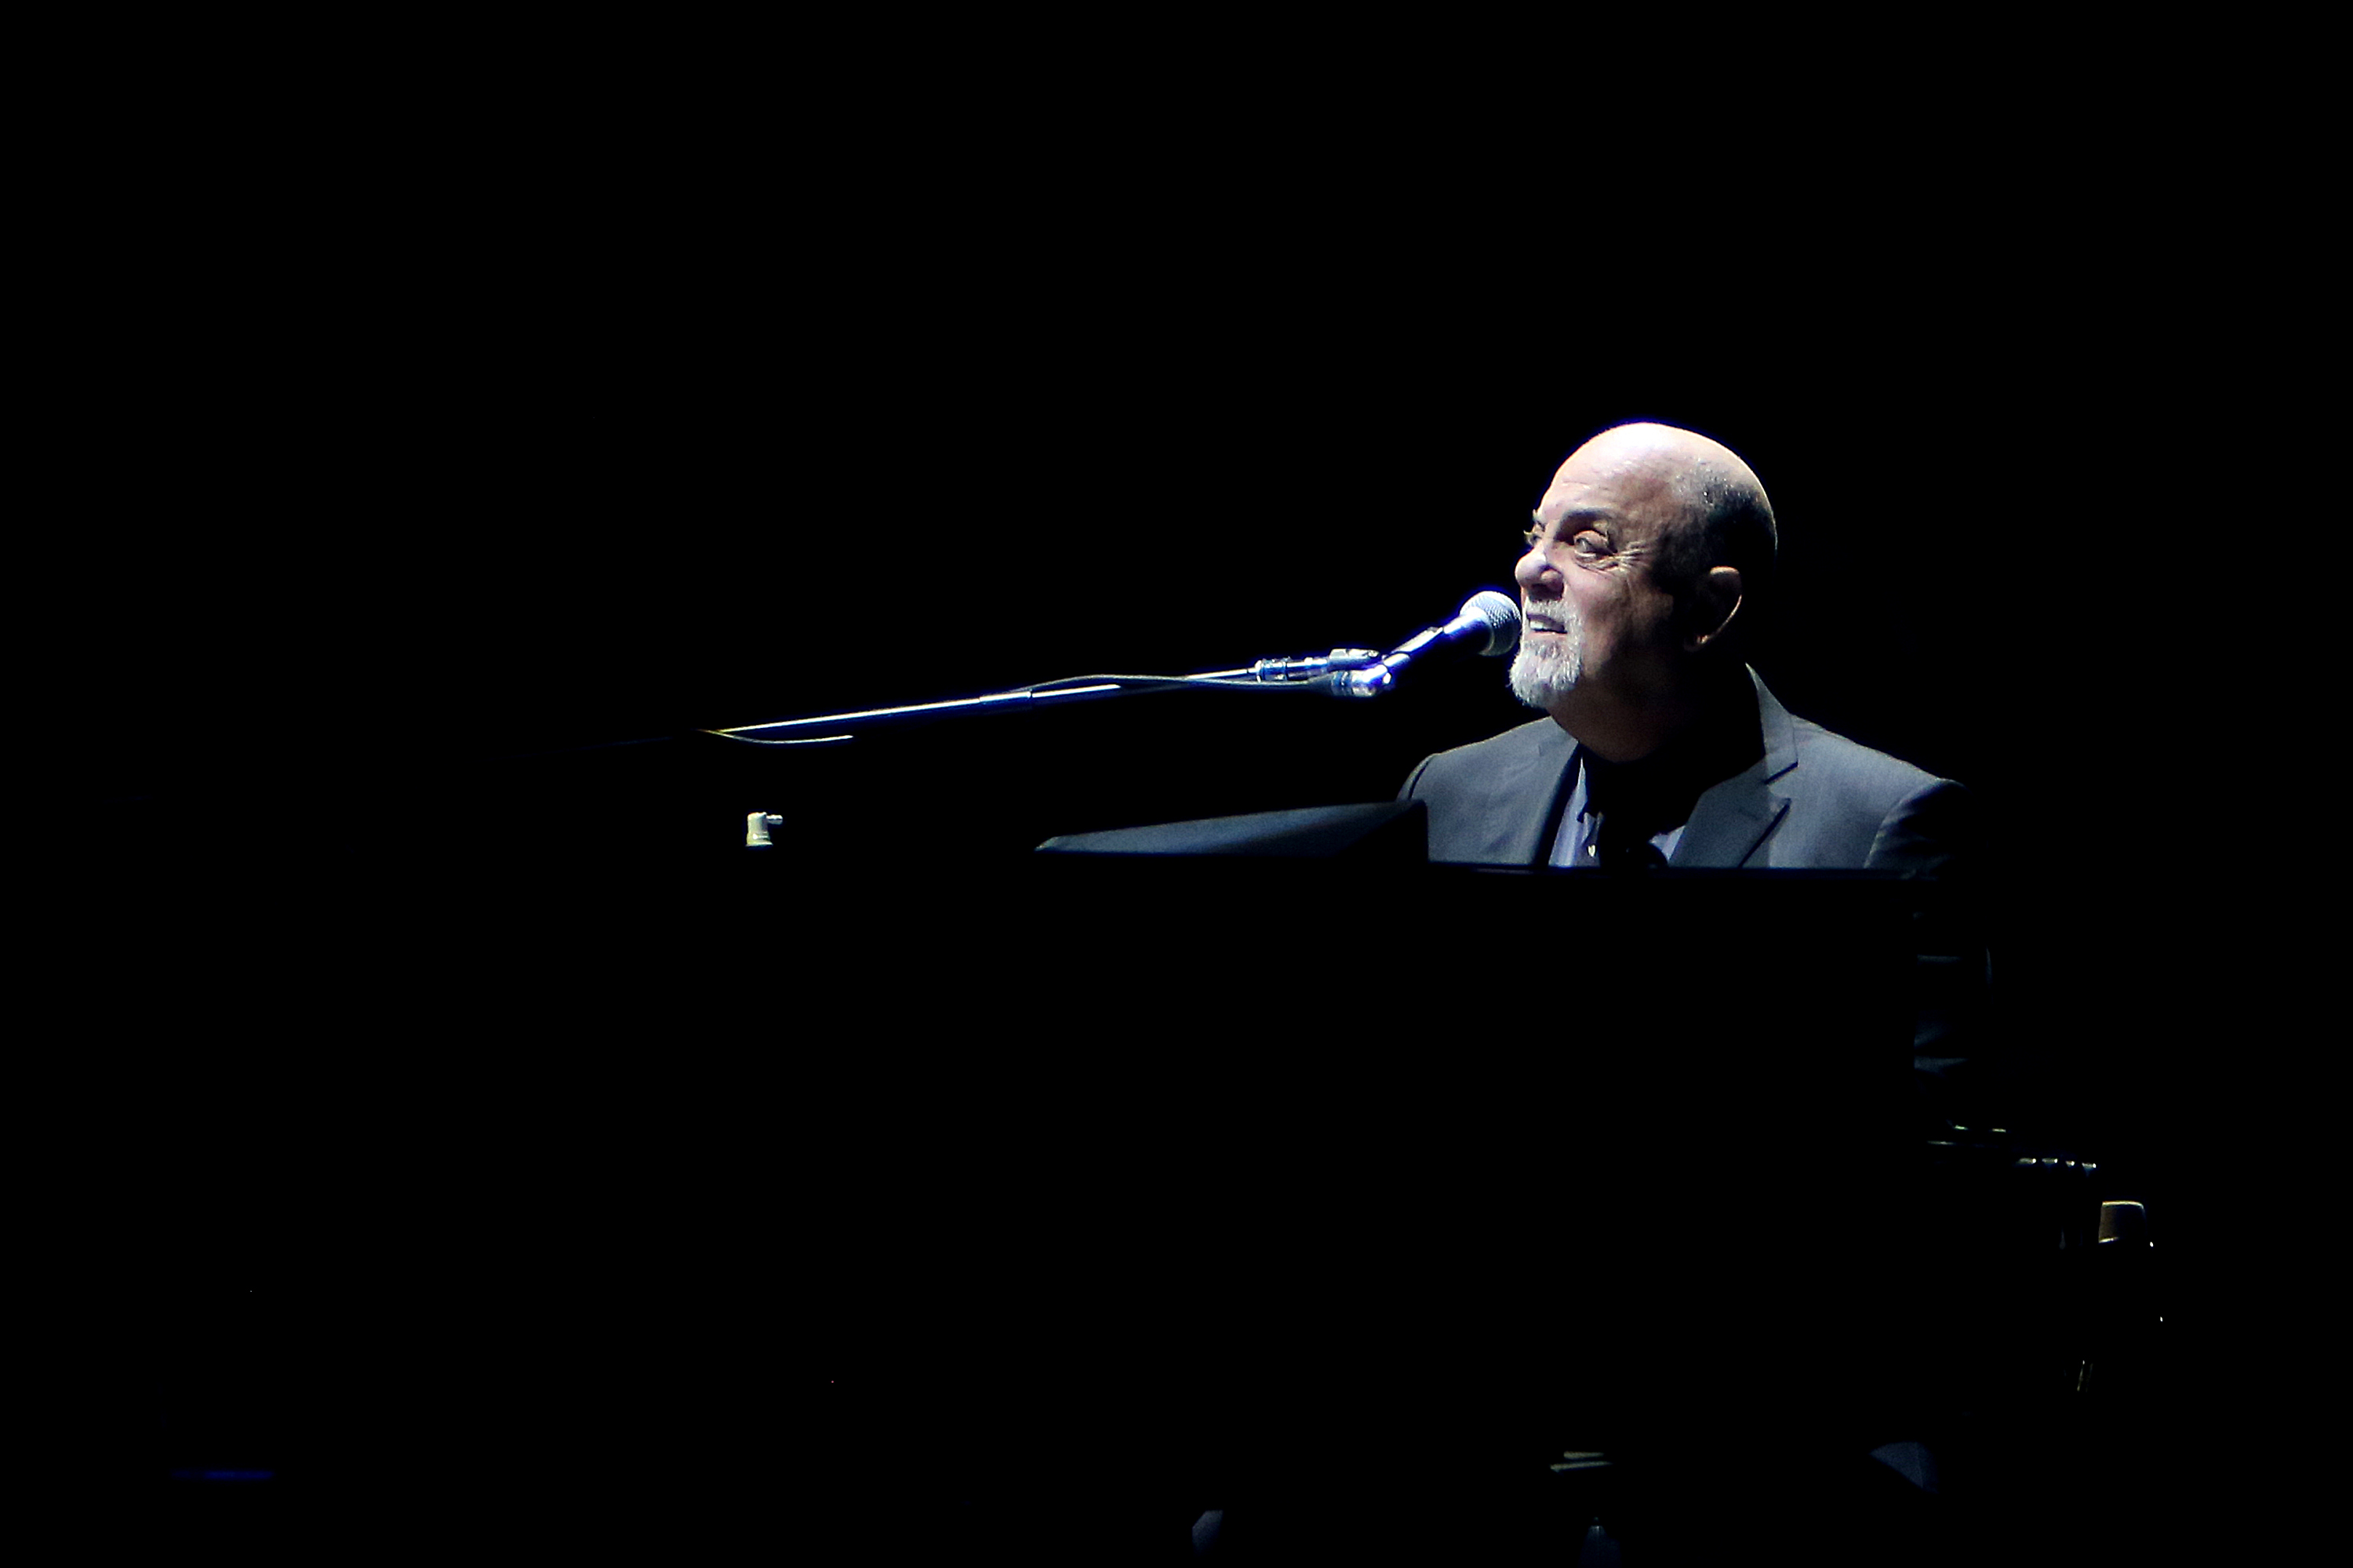 Enjoy this H.P. Lovecraft poem sung to the tune of Billy Joel's 'Piano Man'